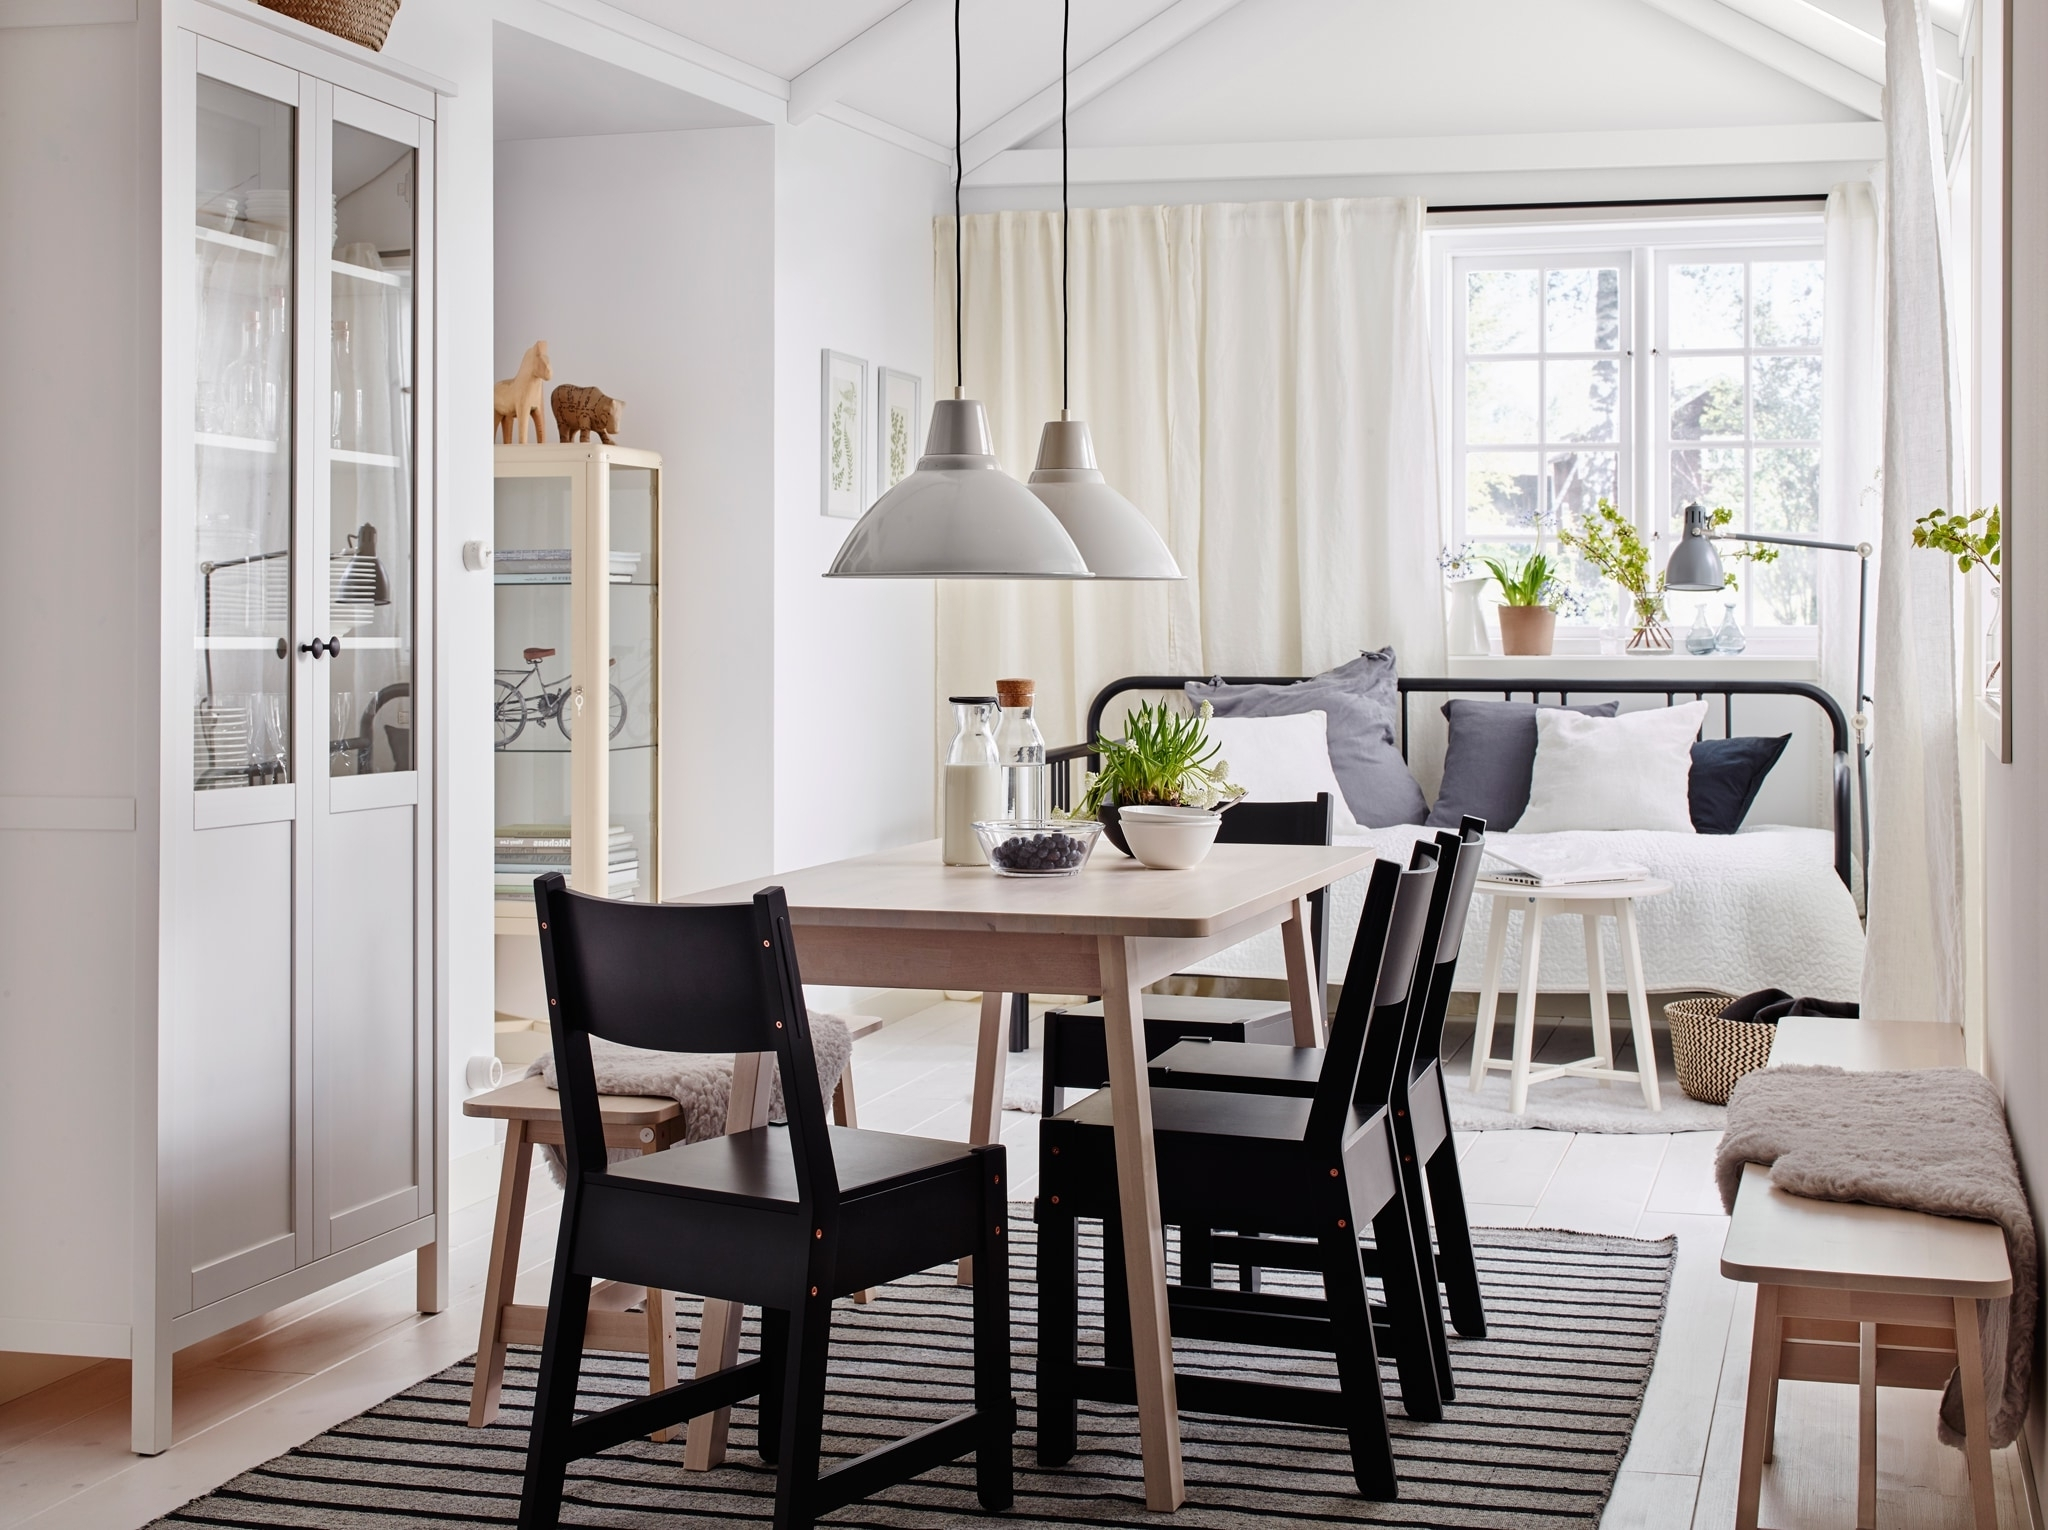 Scandinavian Dining Tables And Chairs Intended For Favorite Dining Room Furniture & Ideas (View 19 of 25)